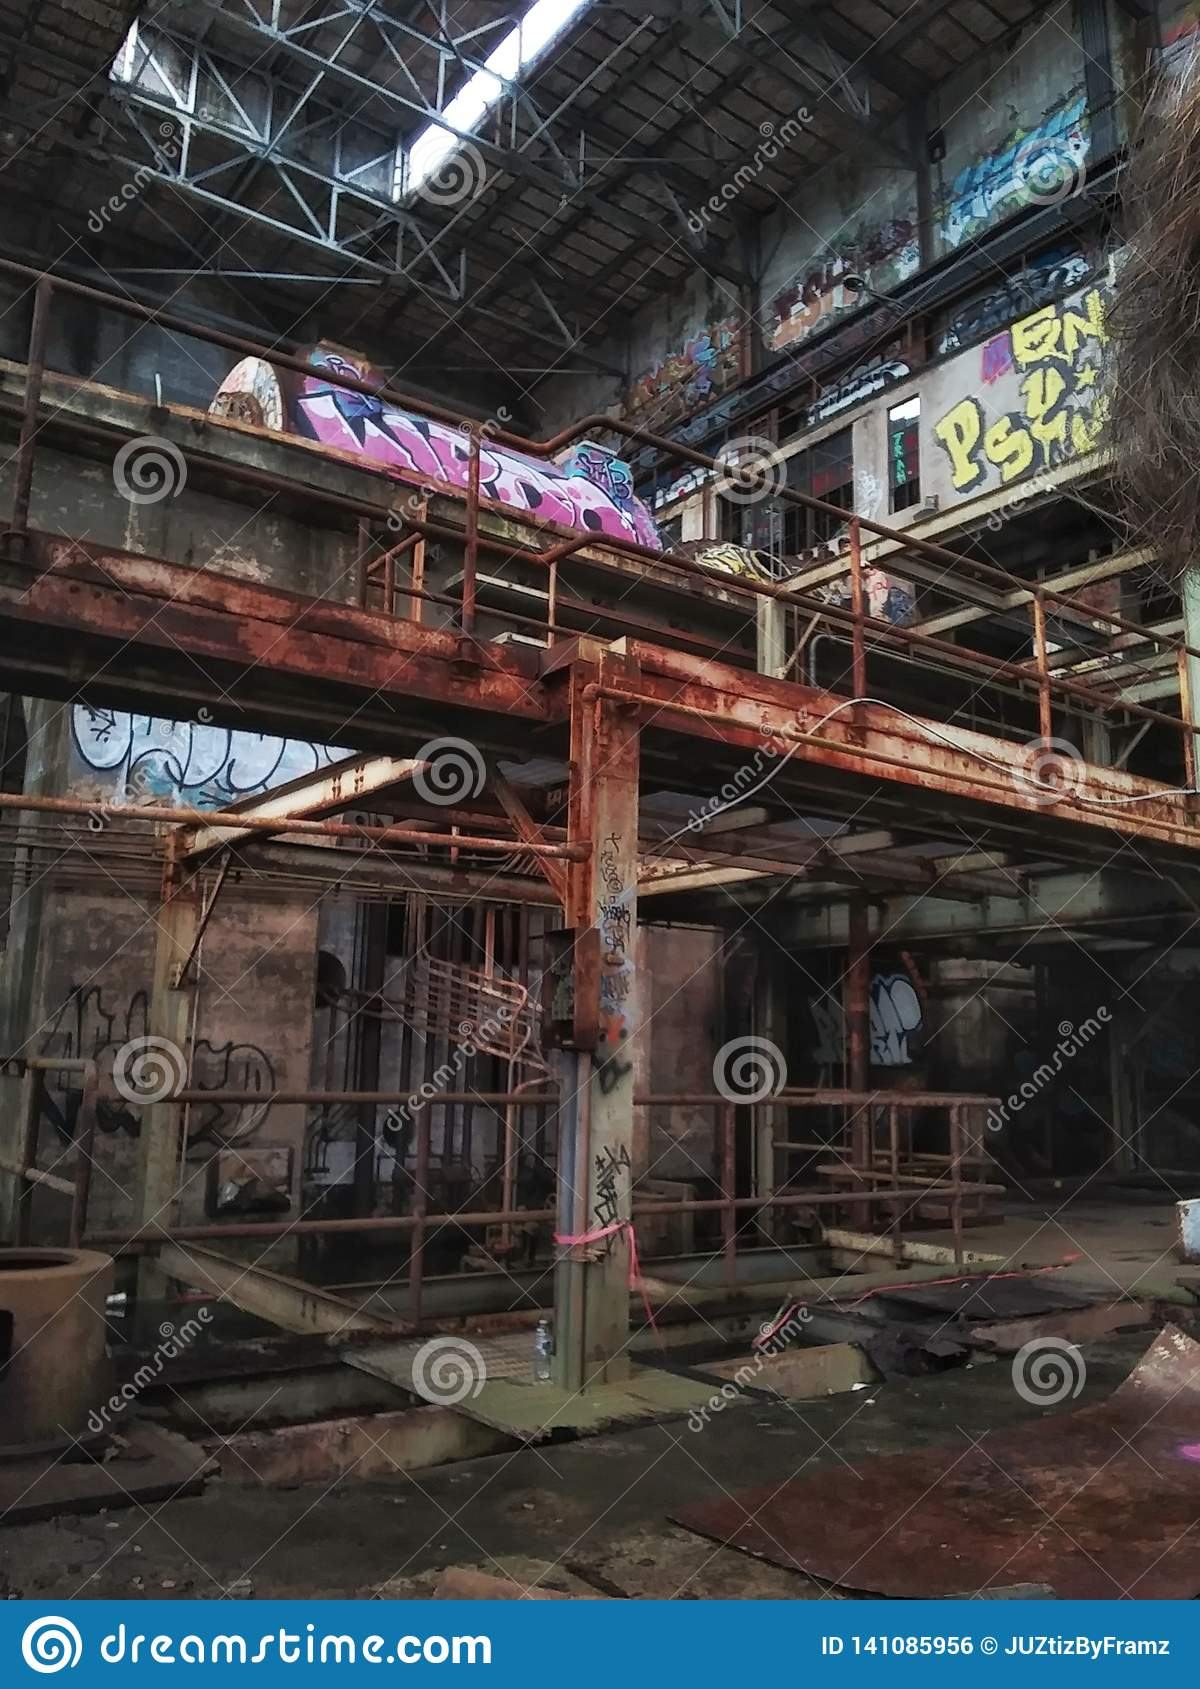 Market Street New Orleans abandoned power plant